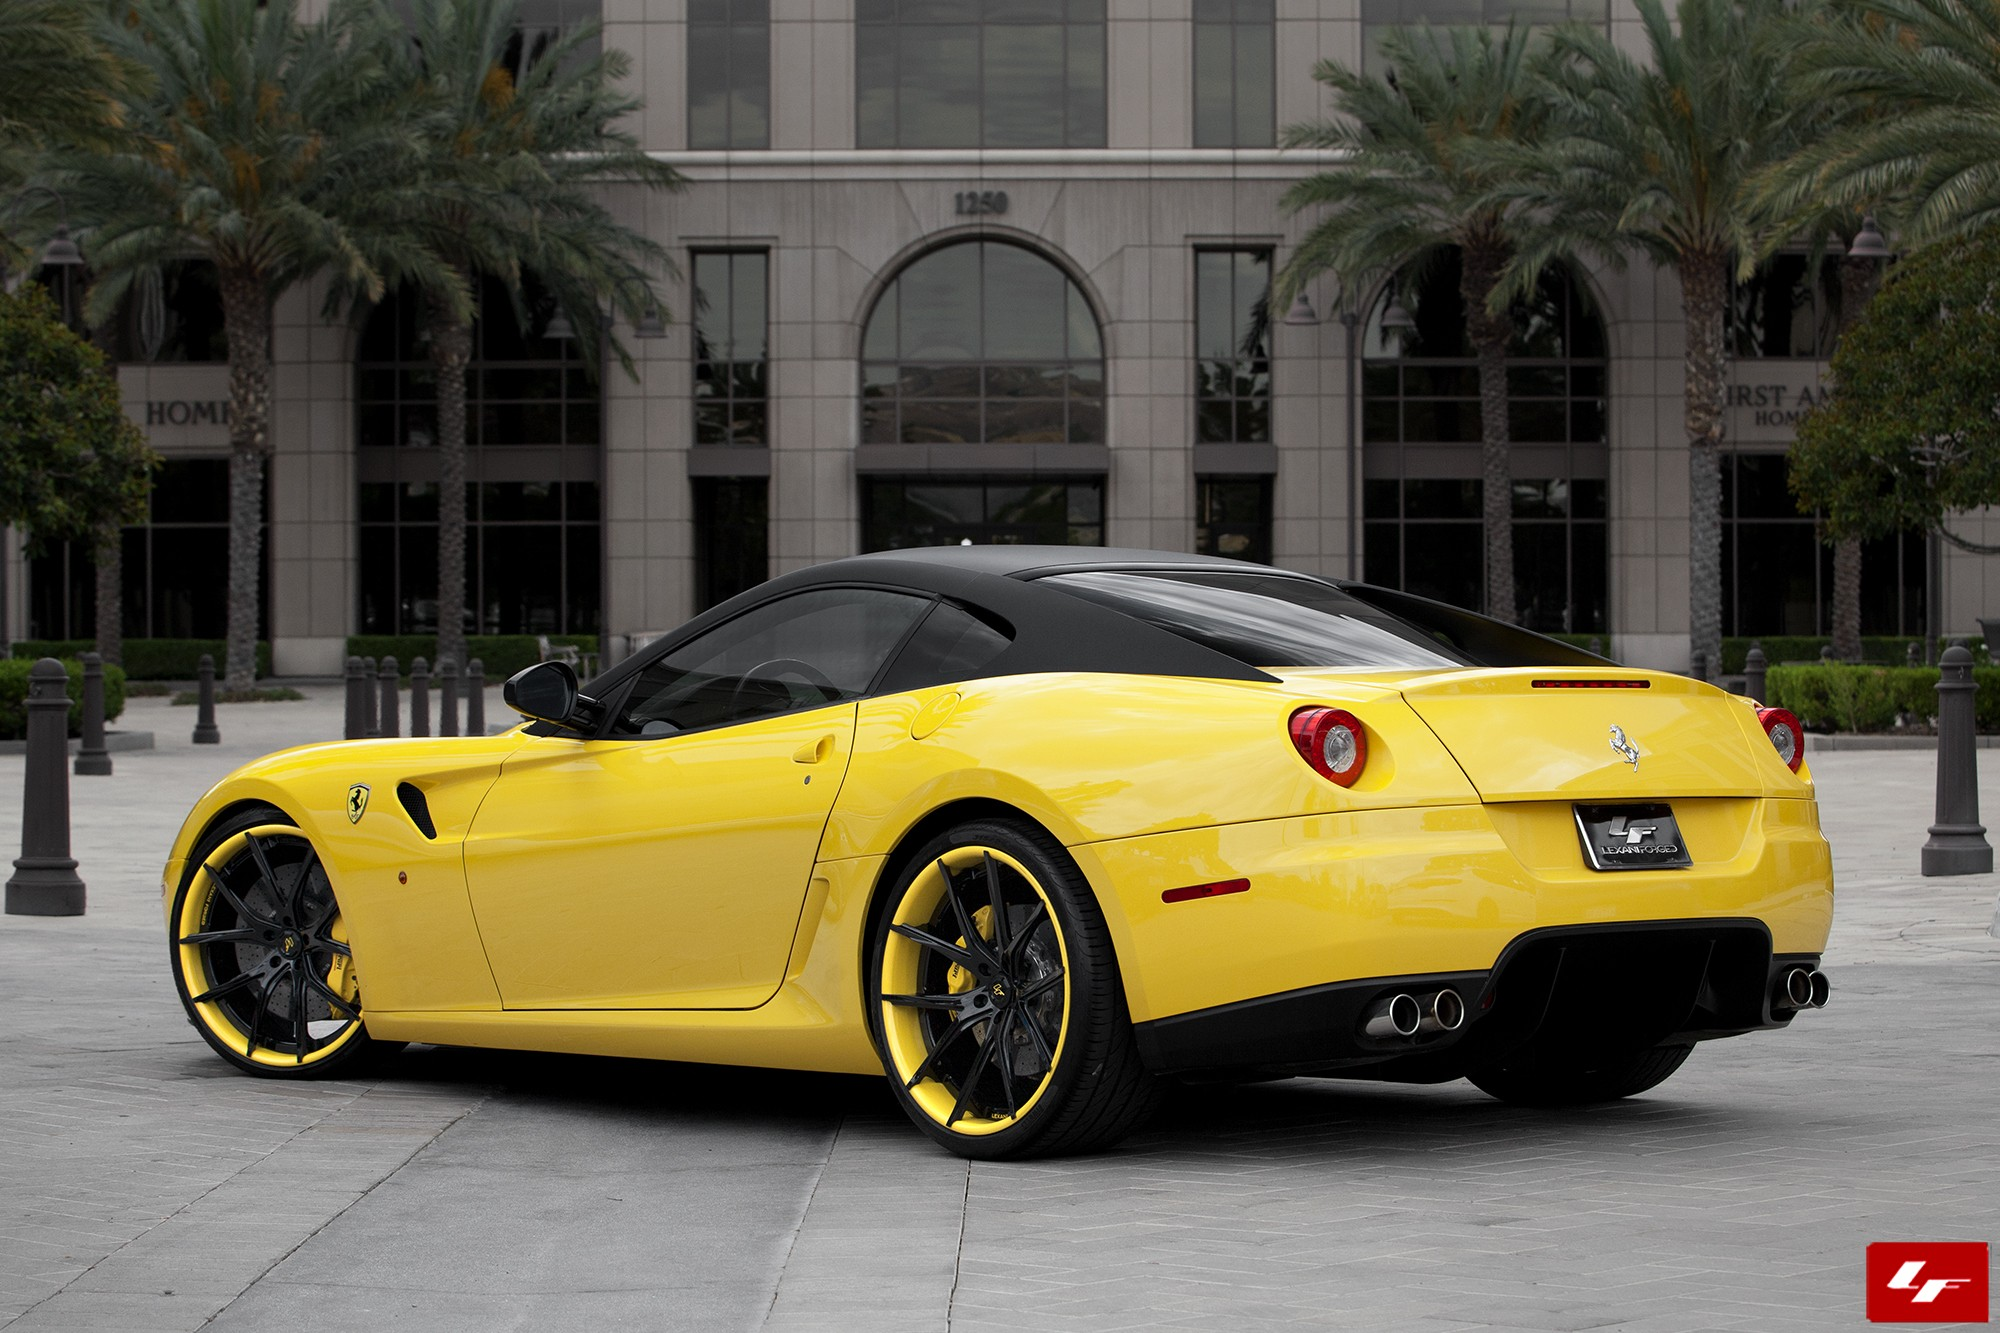 Ferrari 599 on LZ-102 Wheels - Custom Finish